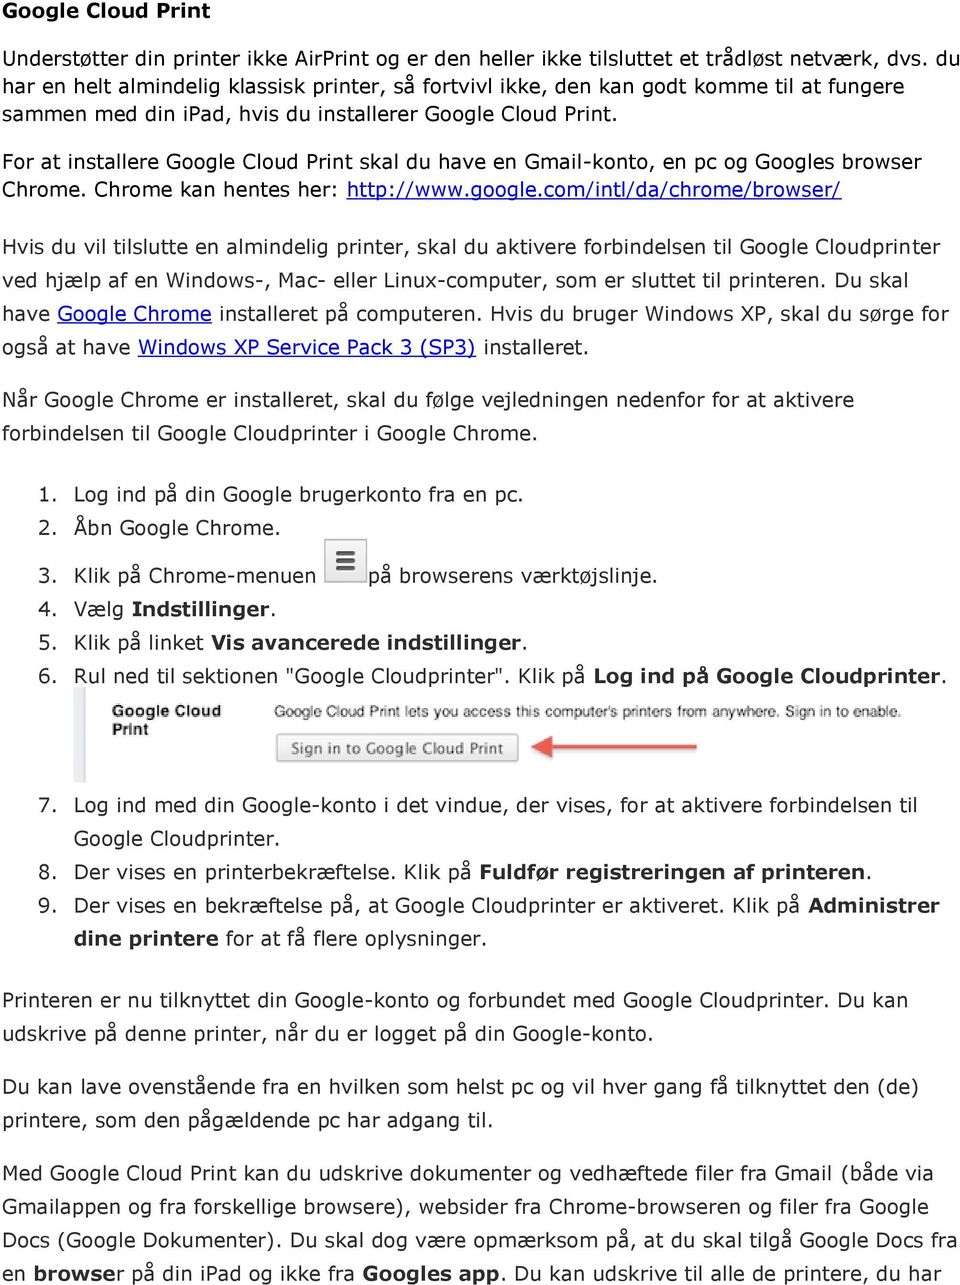 For at installere Google Cloud Print skal du have en Gmail-konto, en pc og Googles browser Chrome. Chrome kan hentes her: http://www.google.